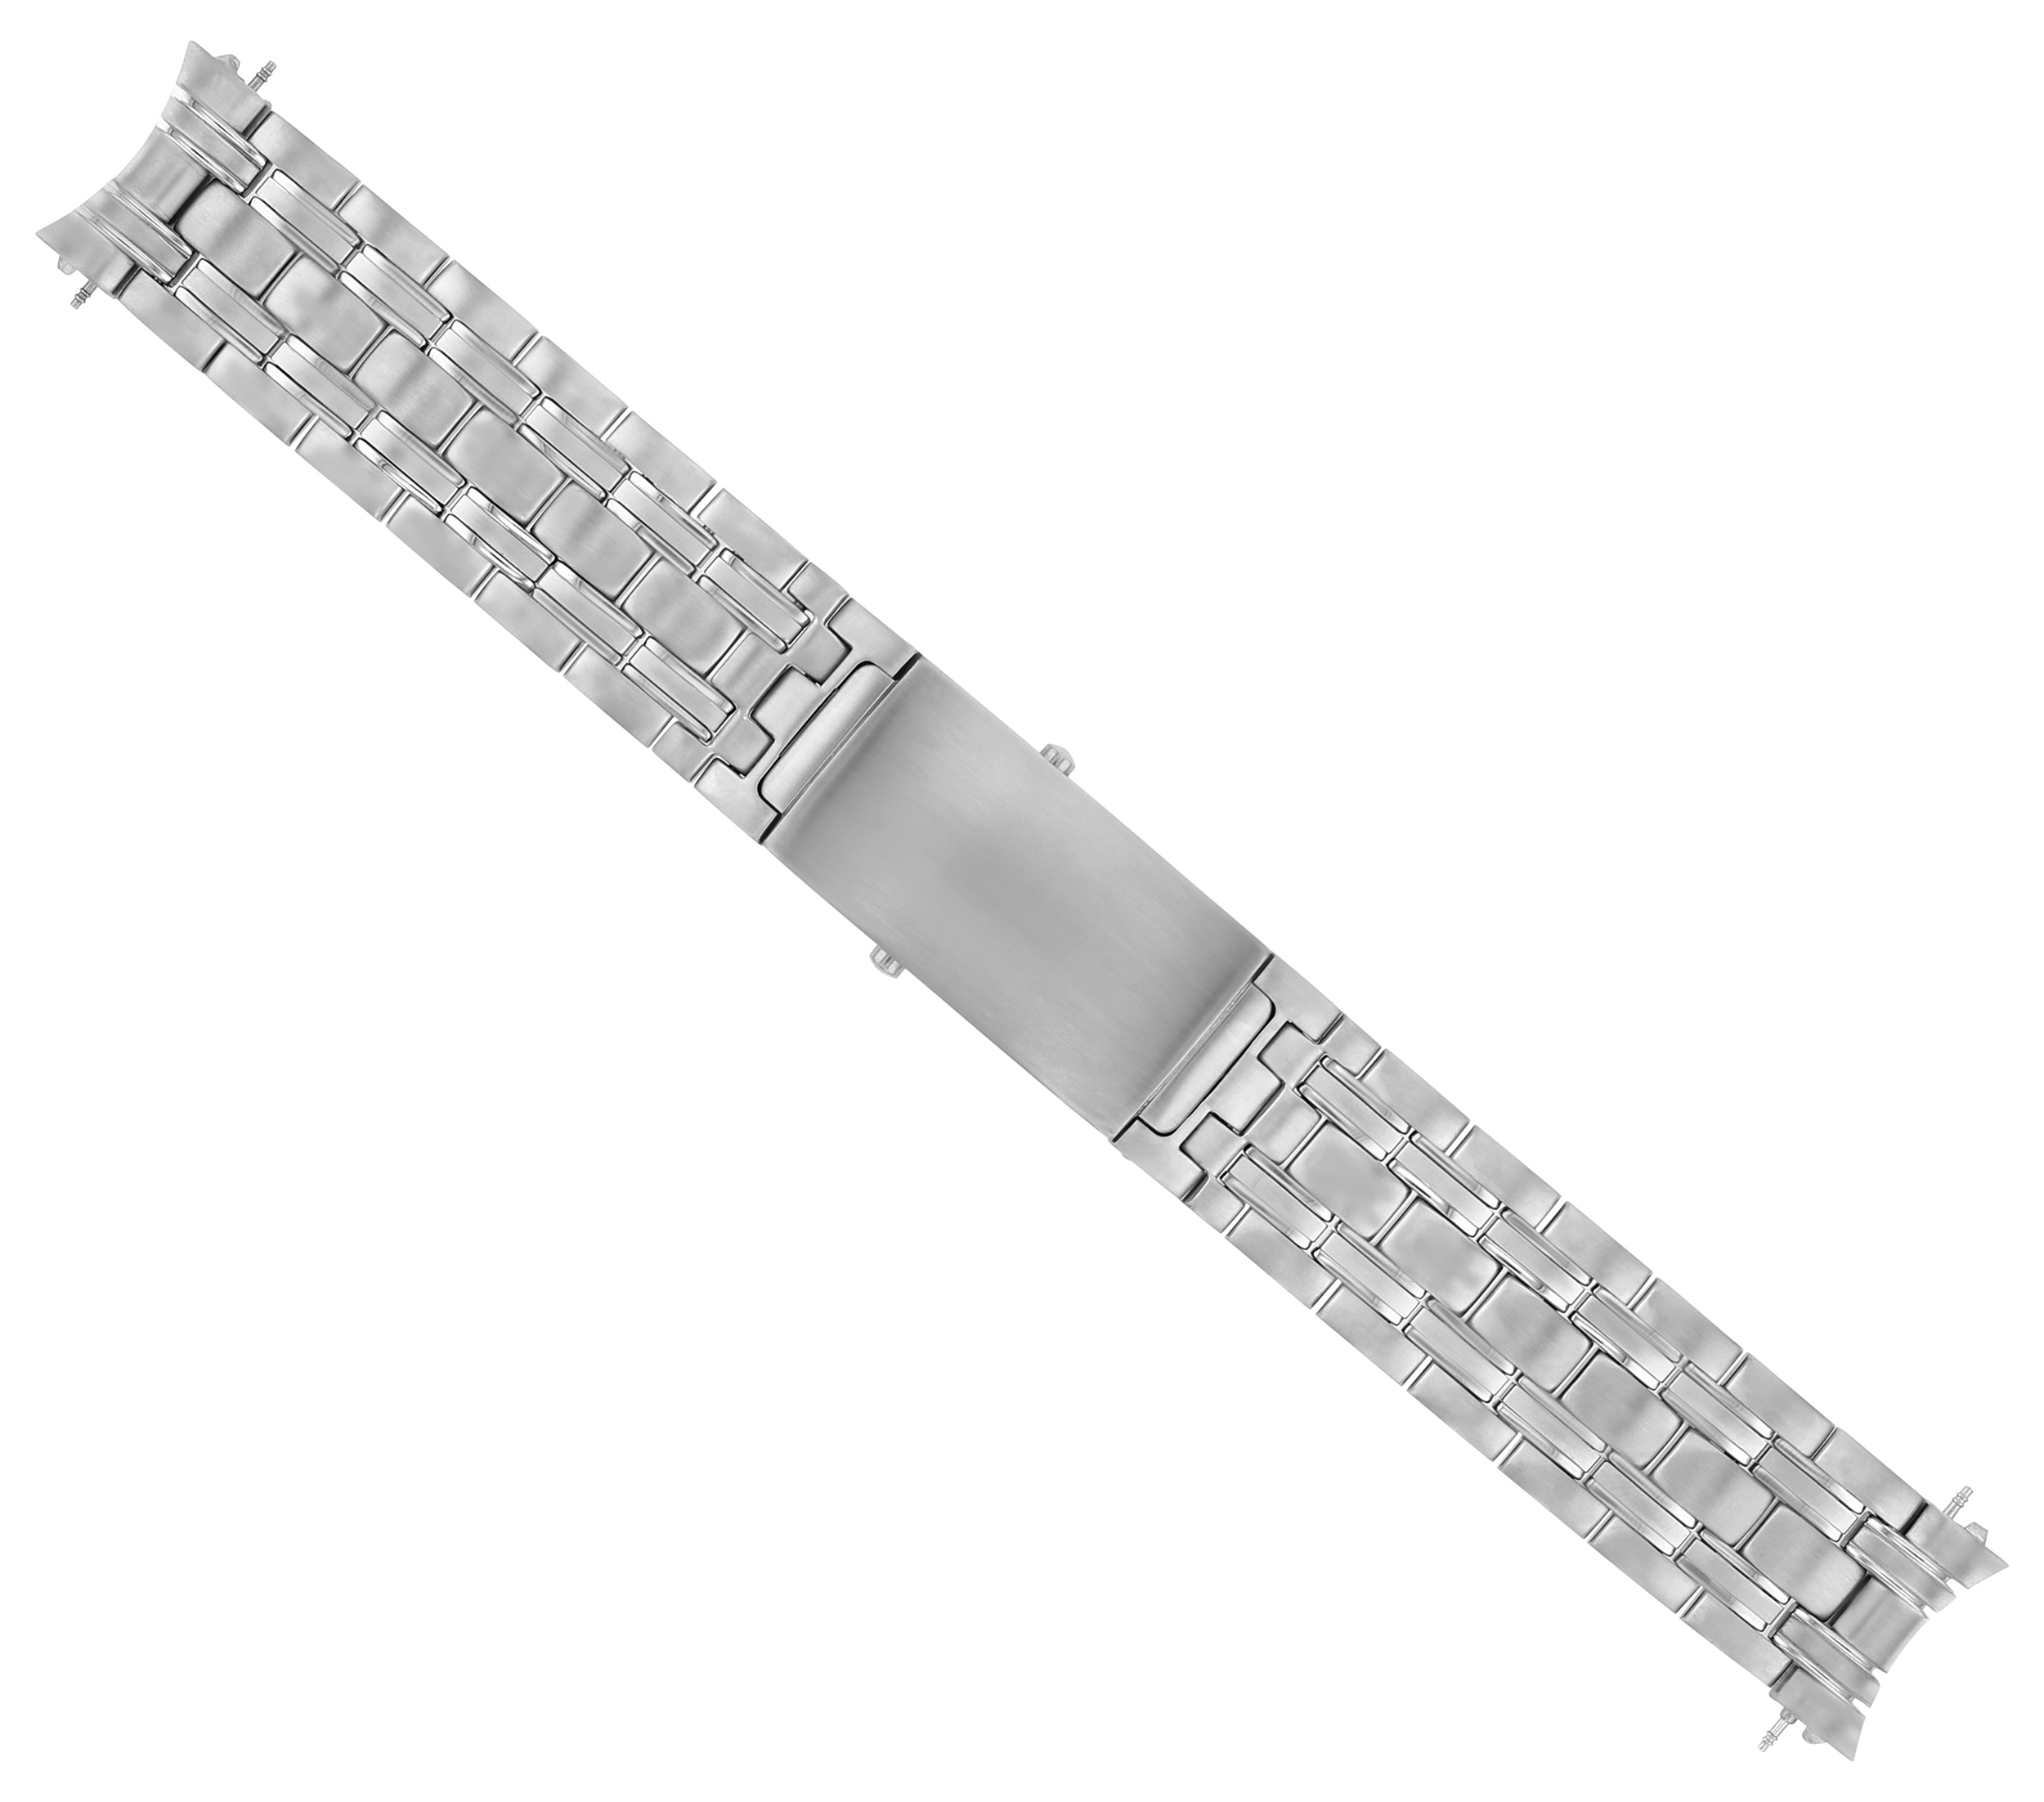 Details About 18mm Watch Band For Omega Seamaster Midsize Heavy Bracelet Stainless Steel Top Q